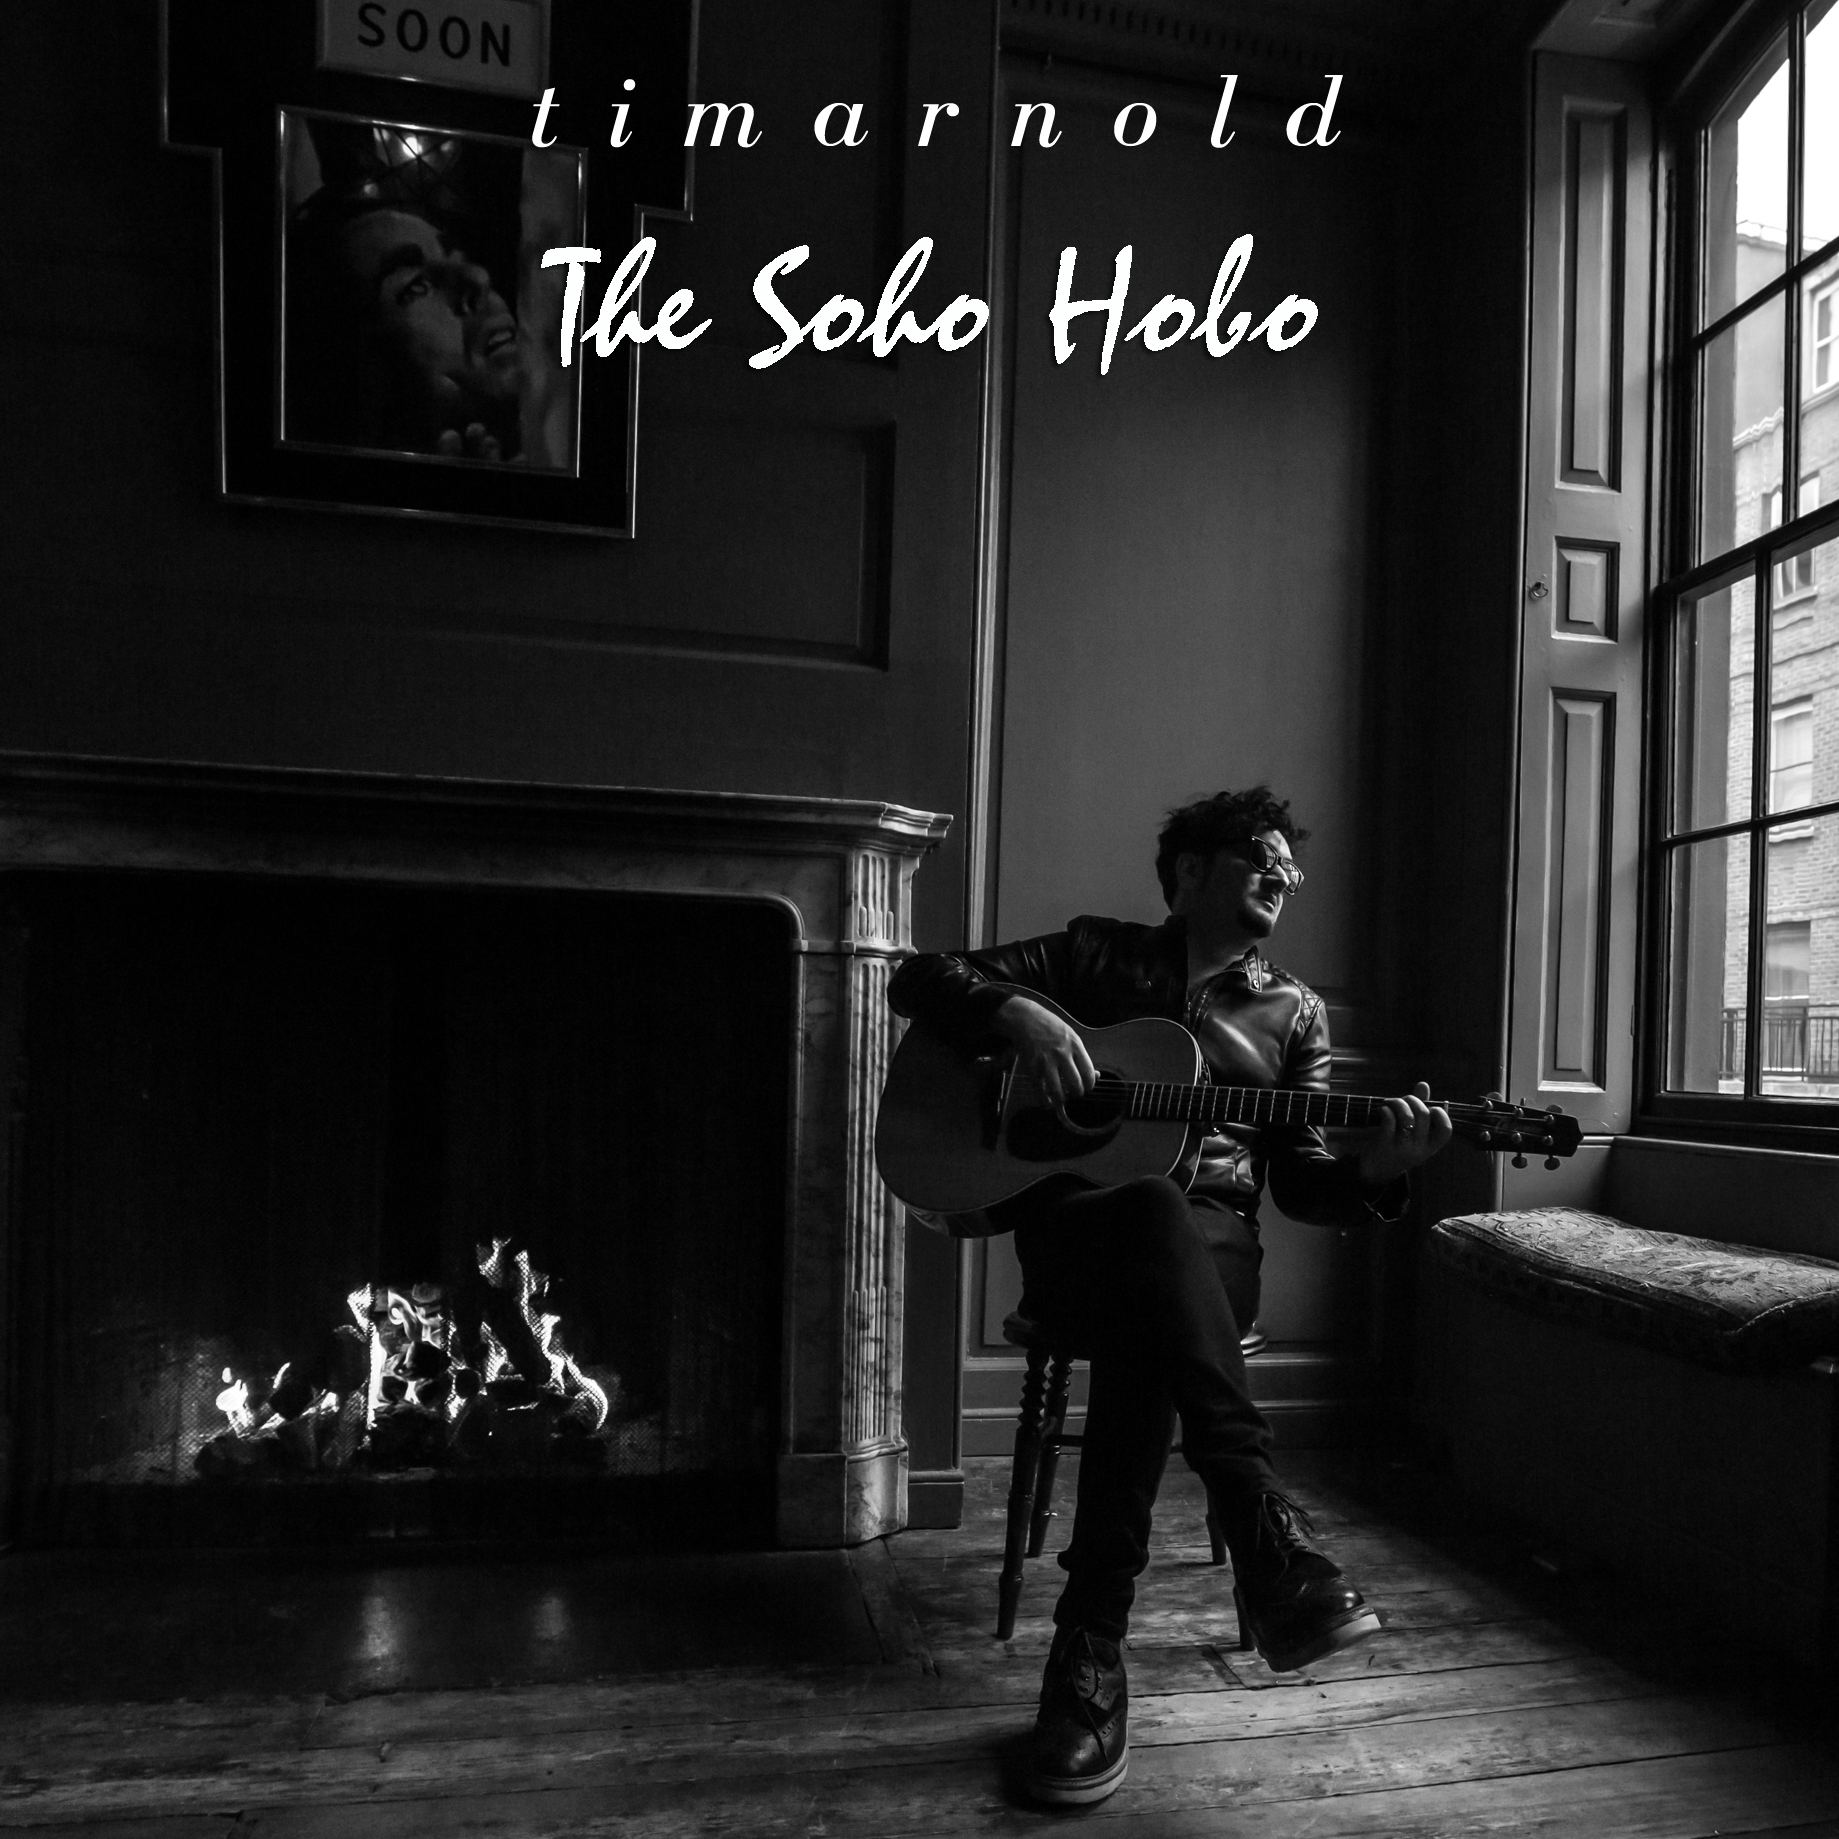 Tim Arnold - The Soho Hobo